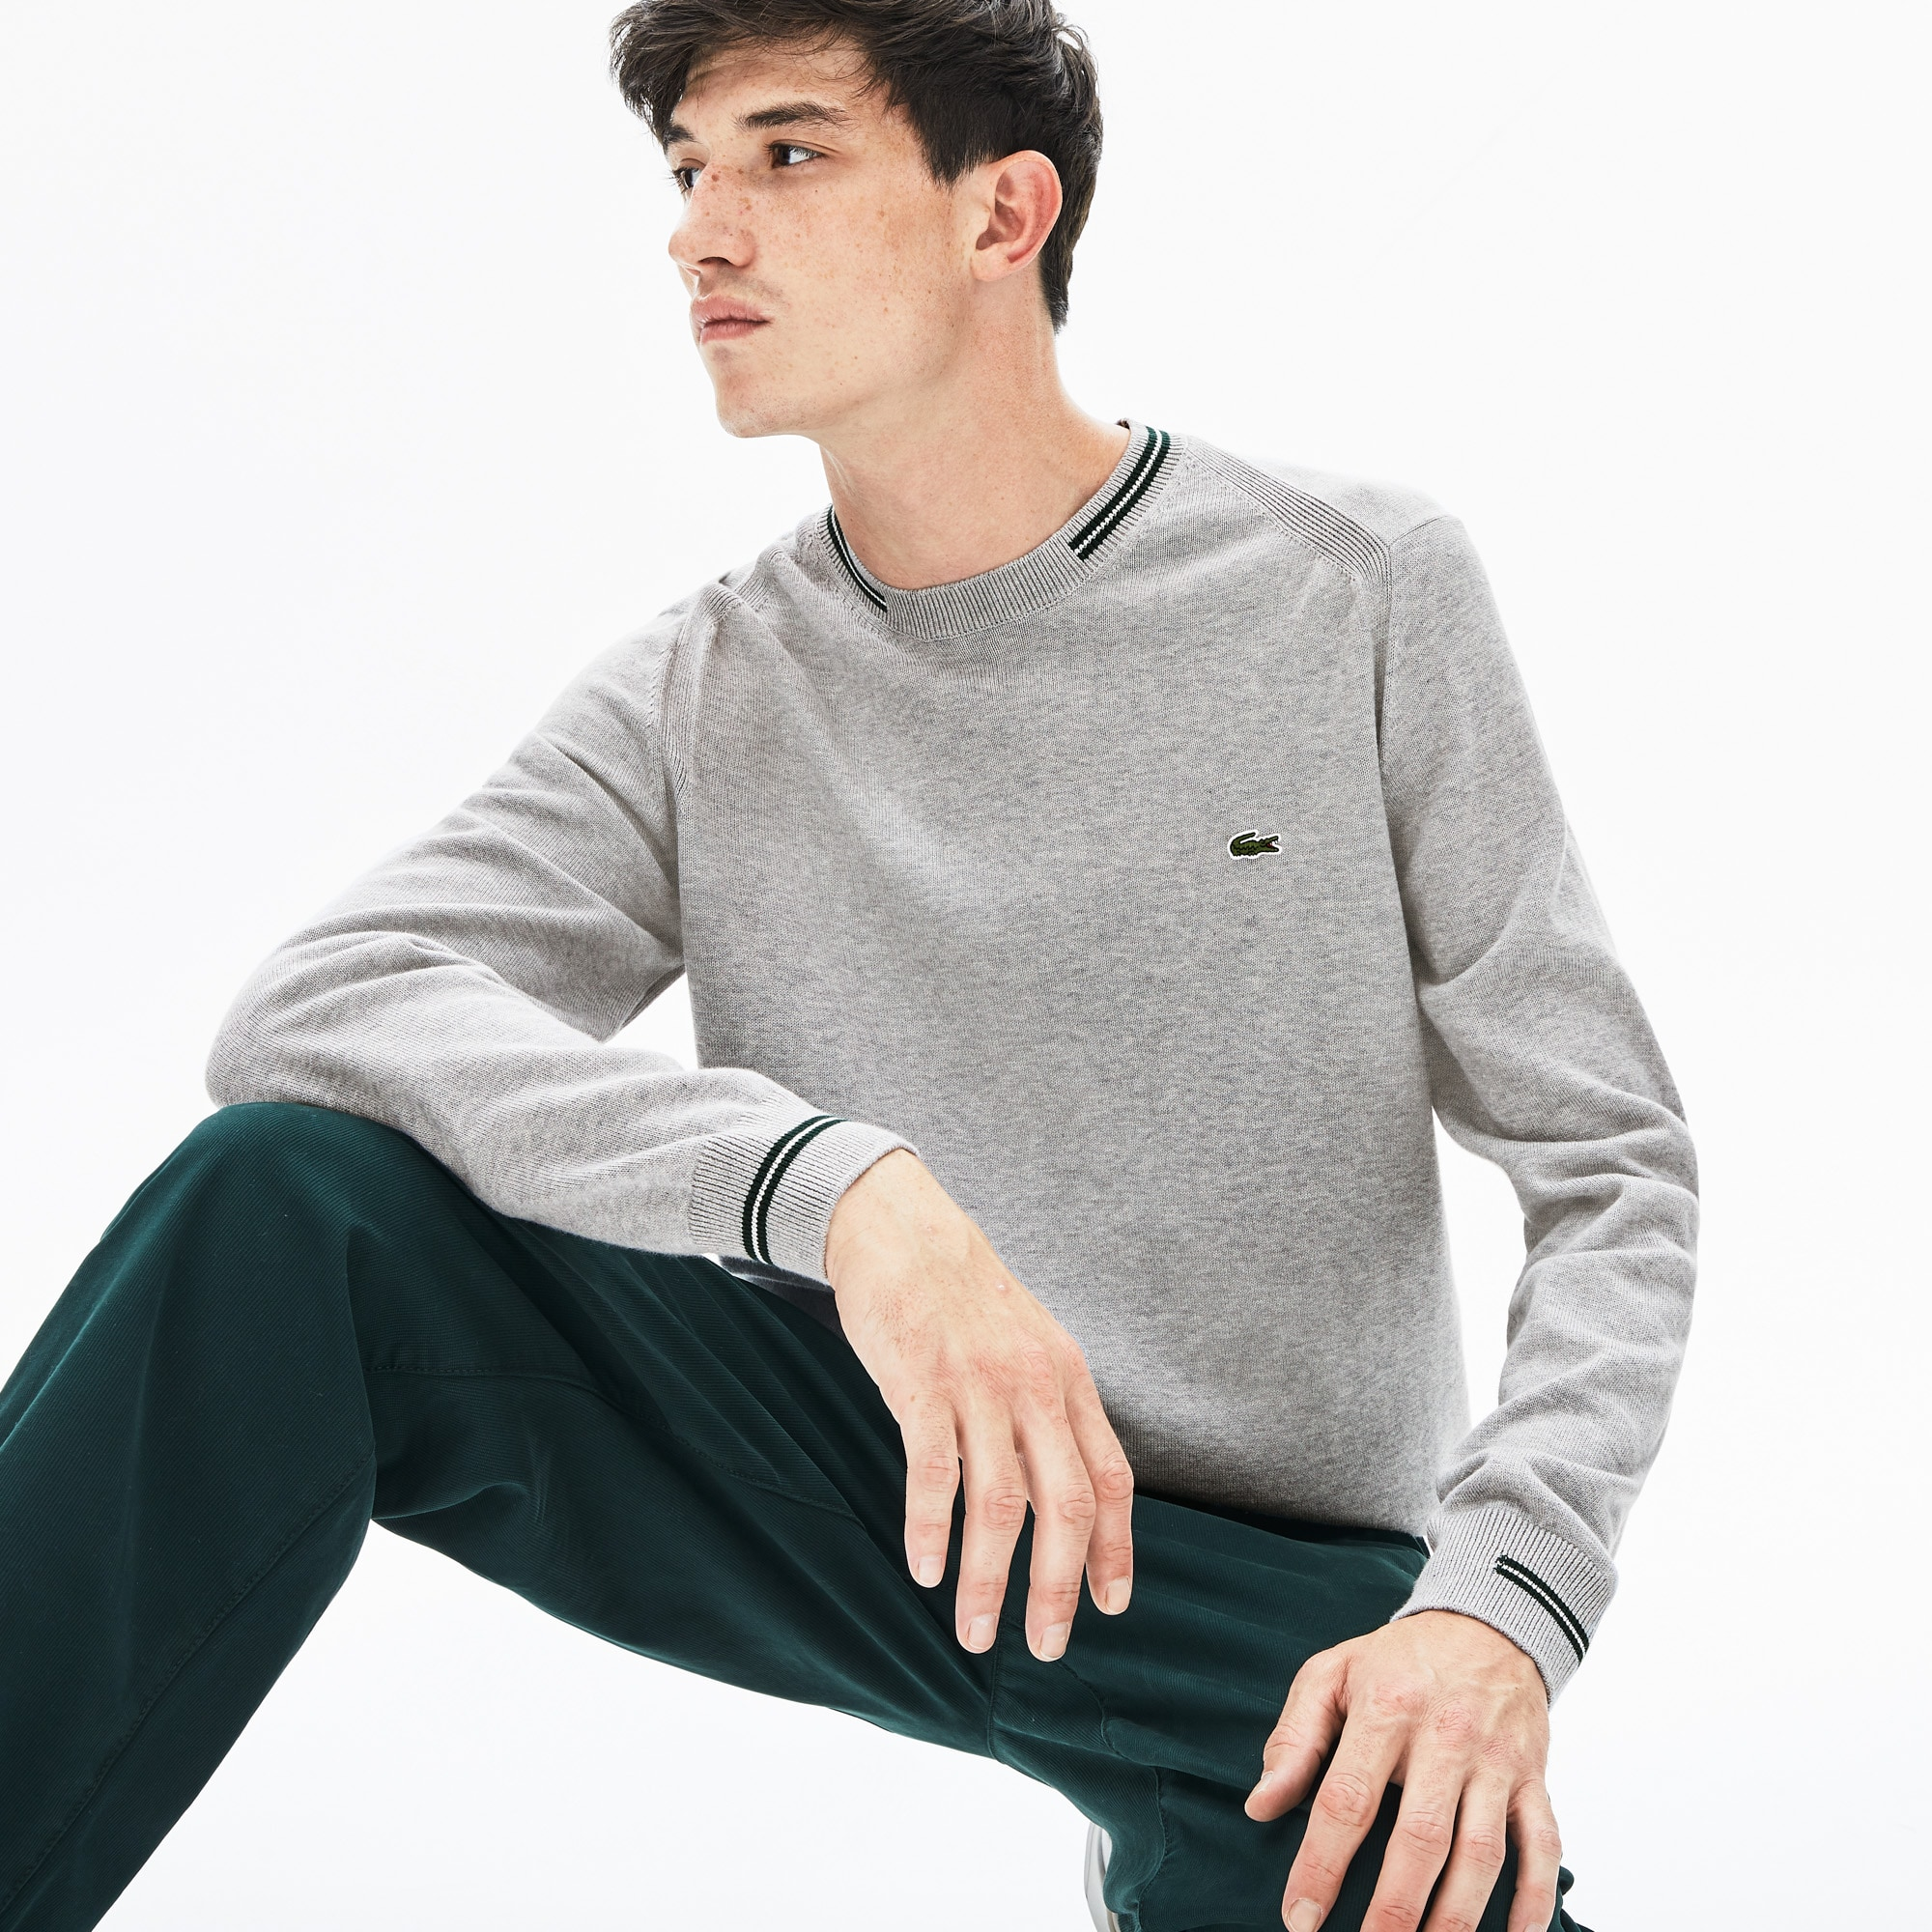 Lacoste Jeans Men's Crewneck Mixed Stich And Striped Cotton Sweater